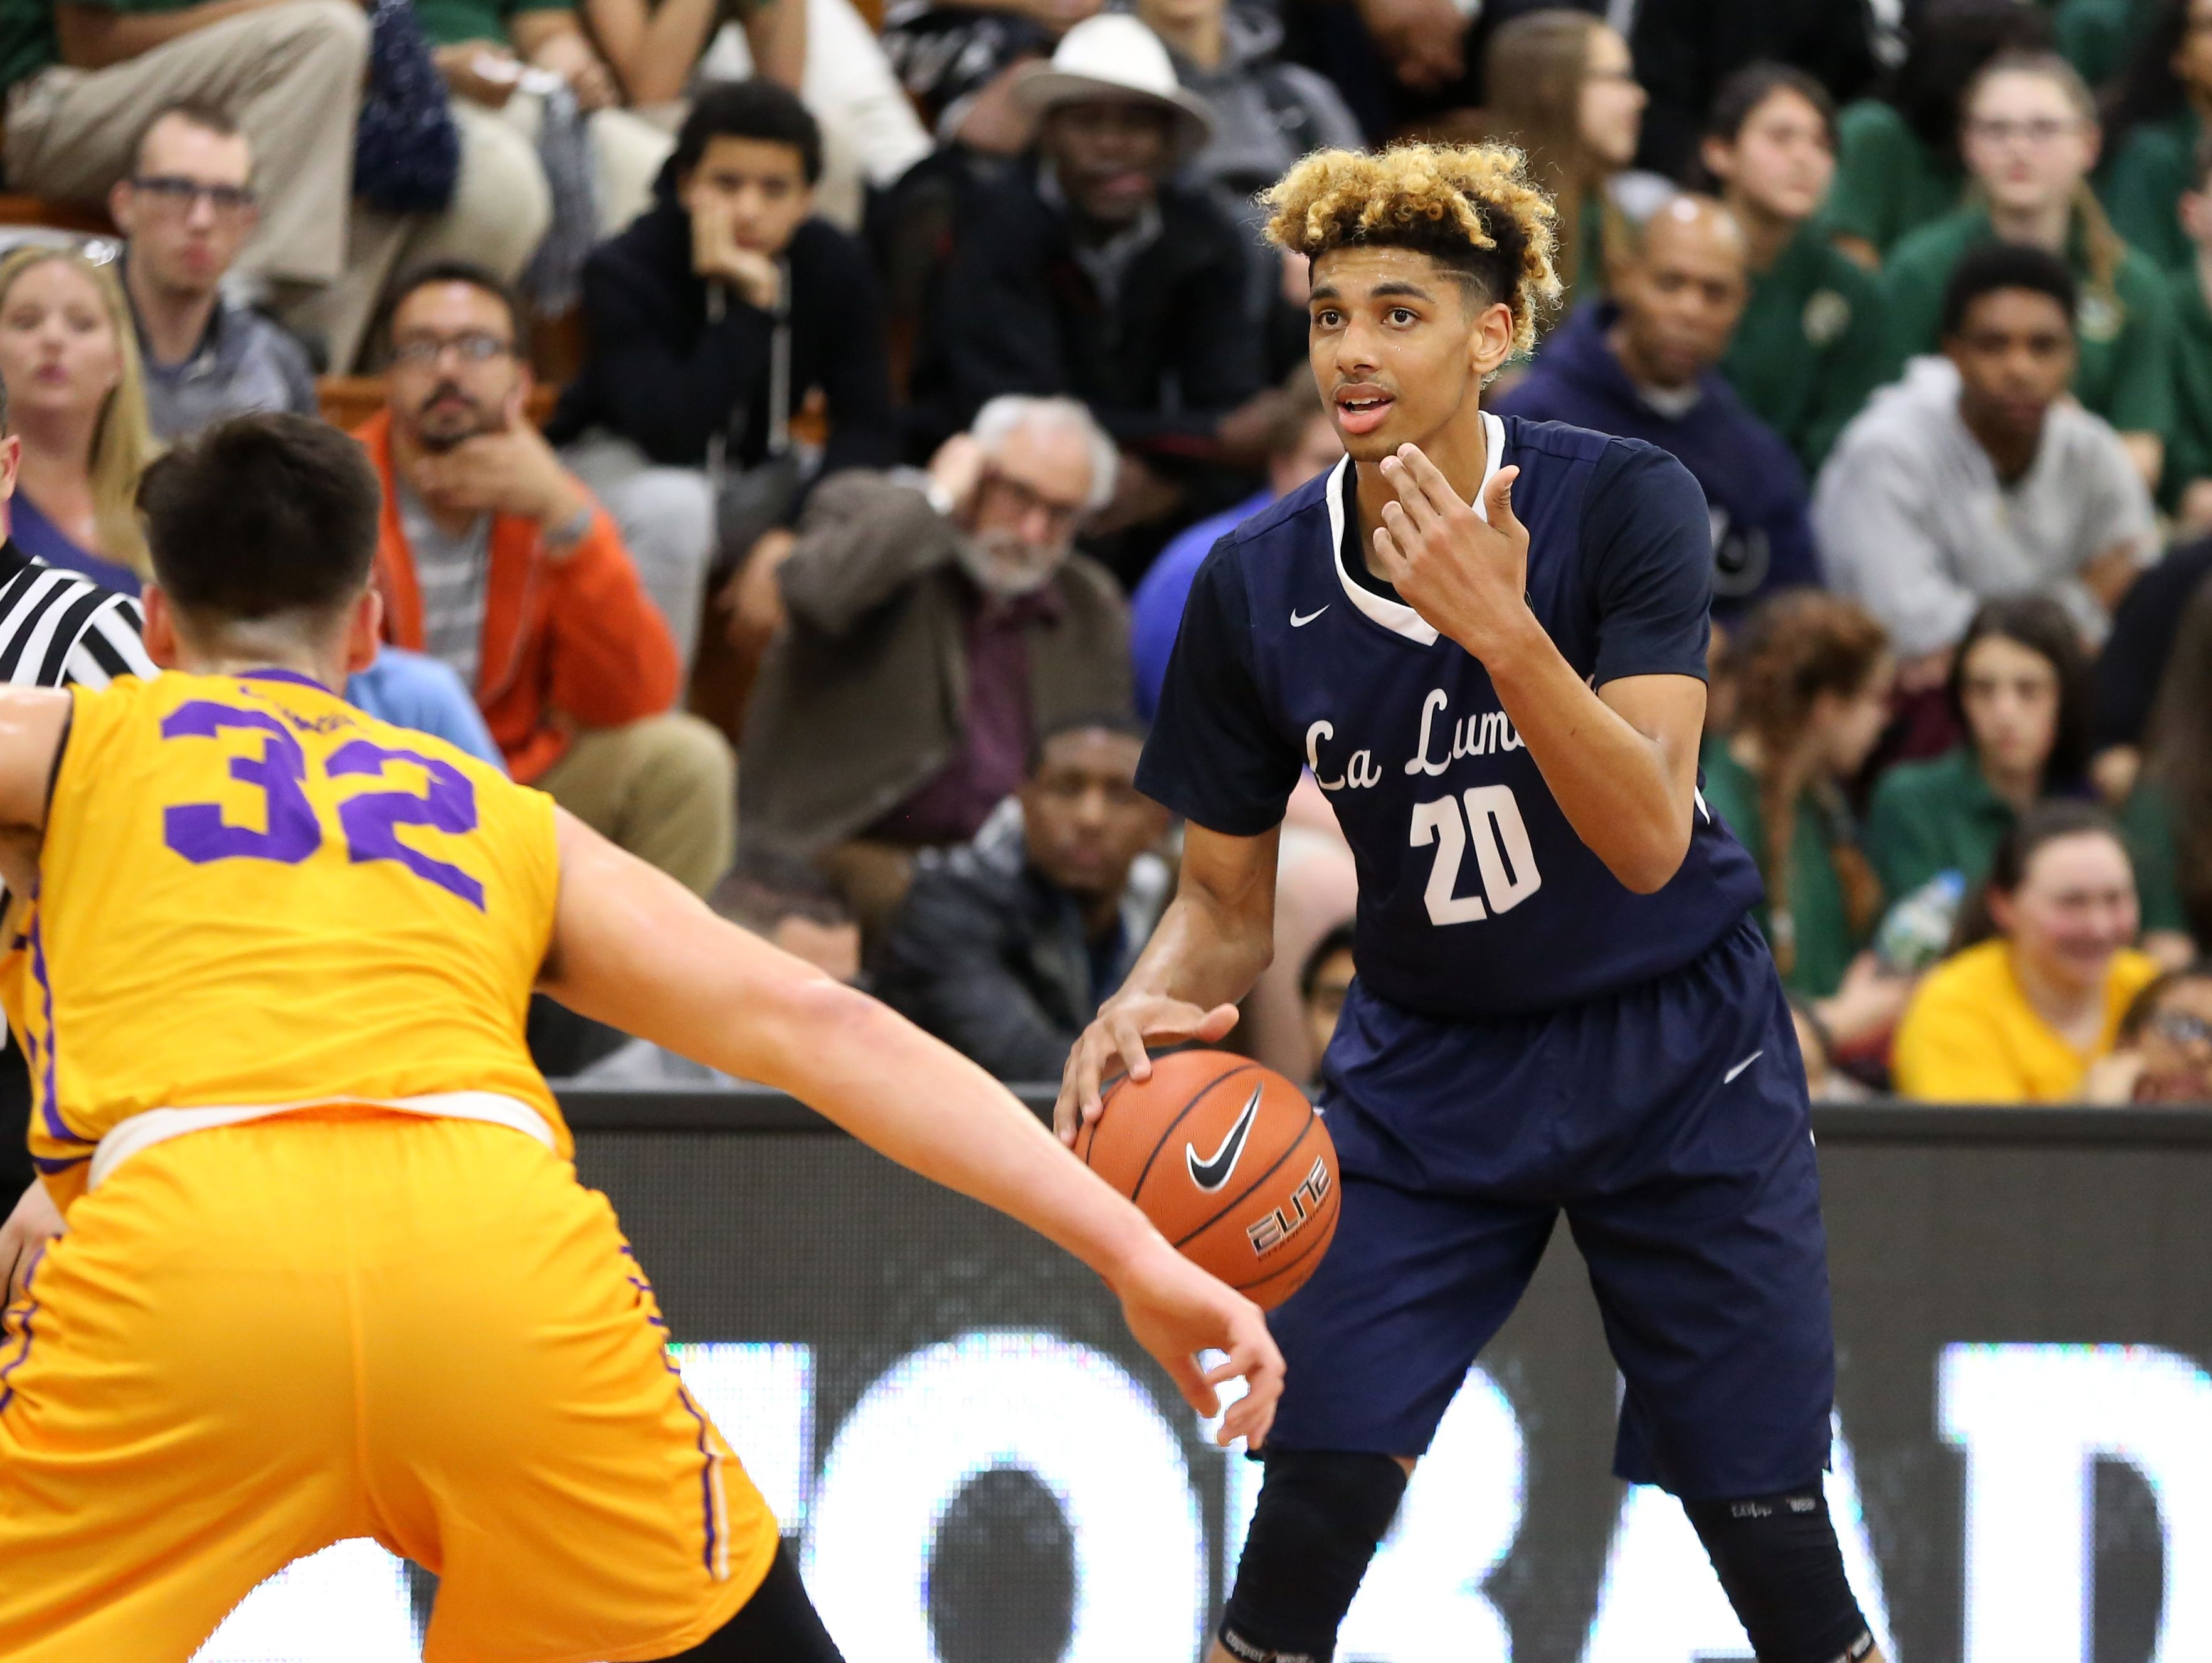 La Lumiere's Brian Bowen said he wouldn't change the massive number of games during the summer.